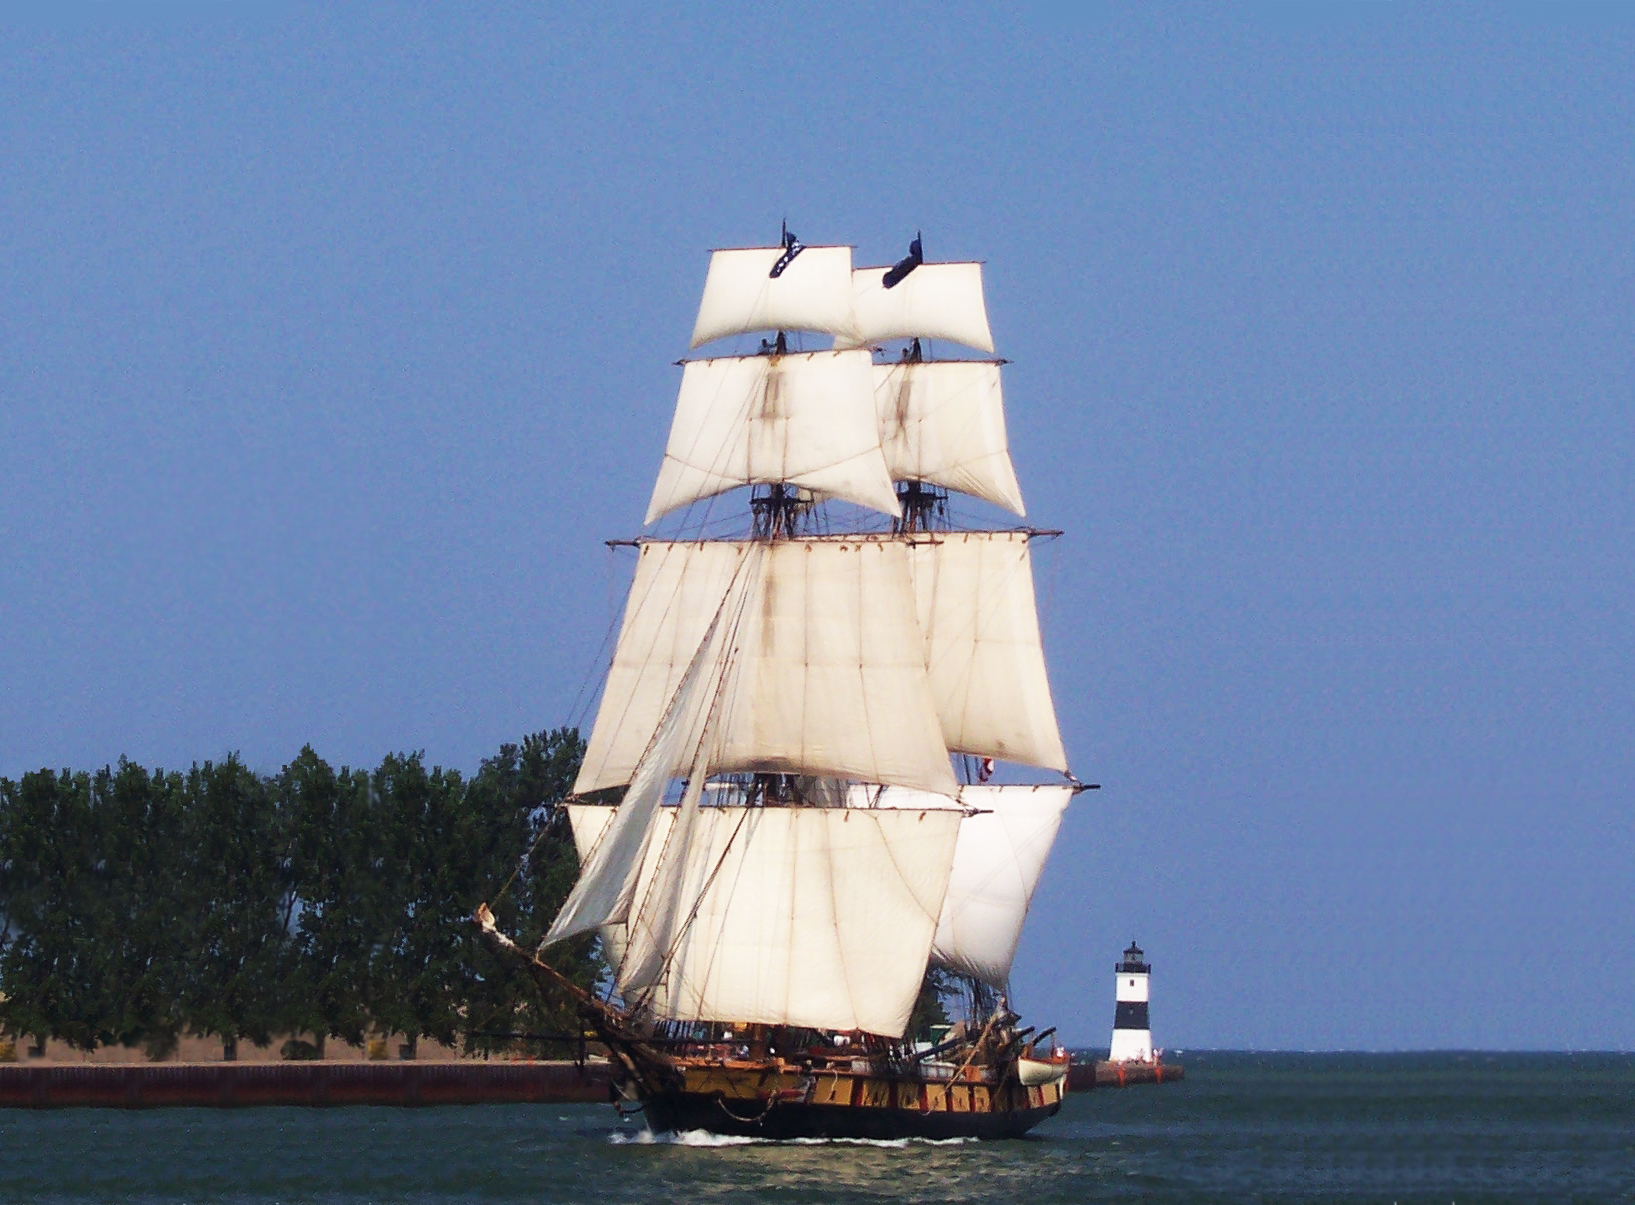 The Brig Niagara at full sail in the Erie Channel